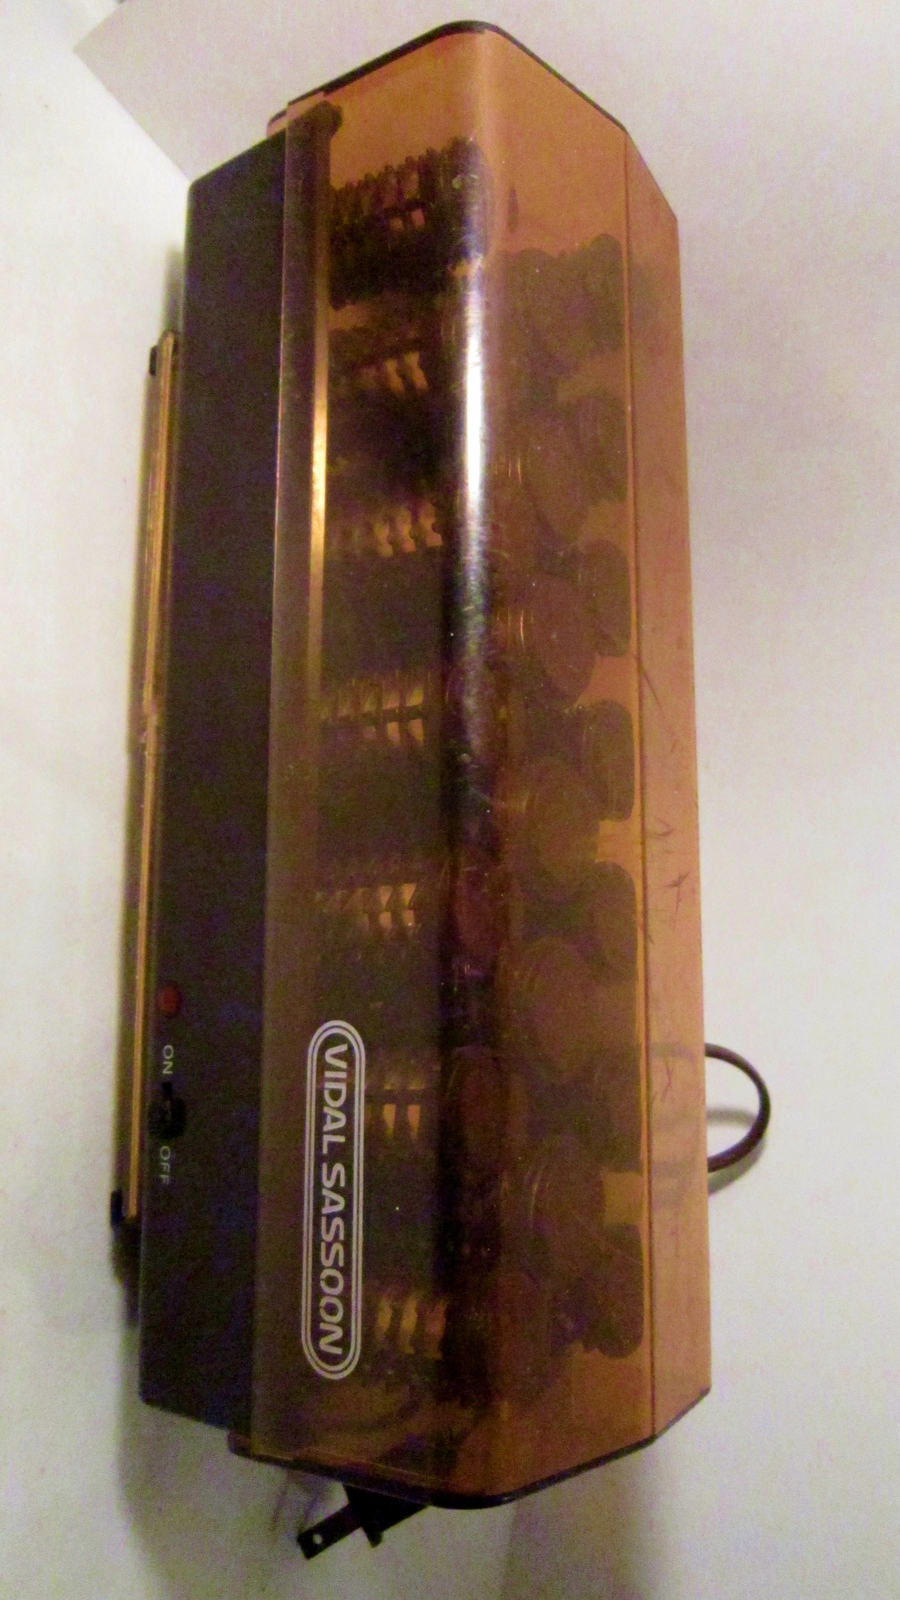 Vidal Sassoon Hairsetter Vintage Hot Rollers Electric Curlers